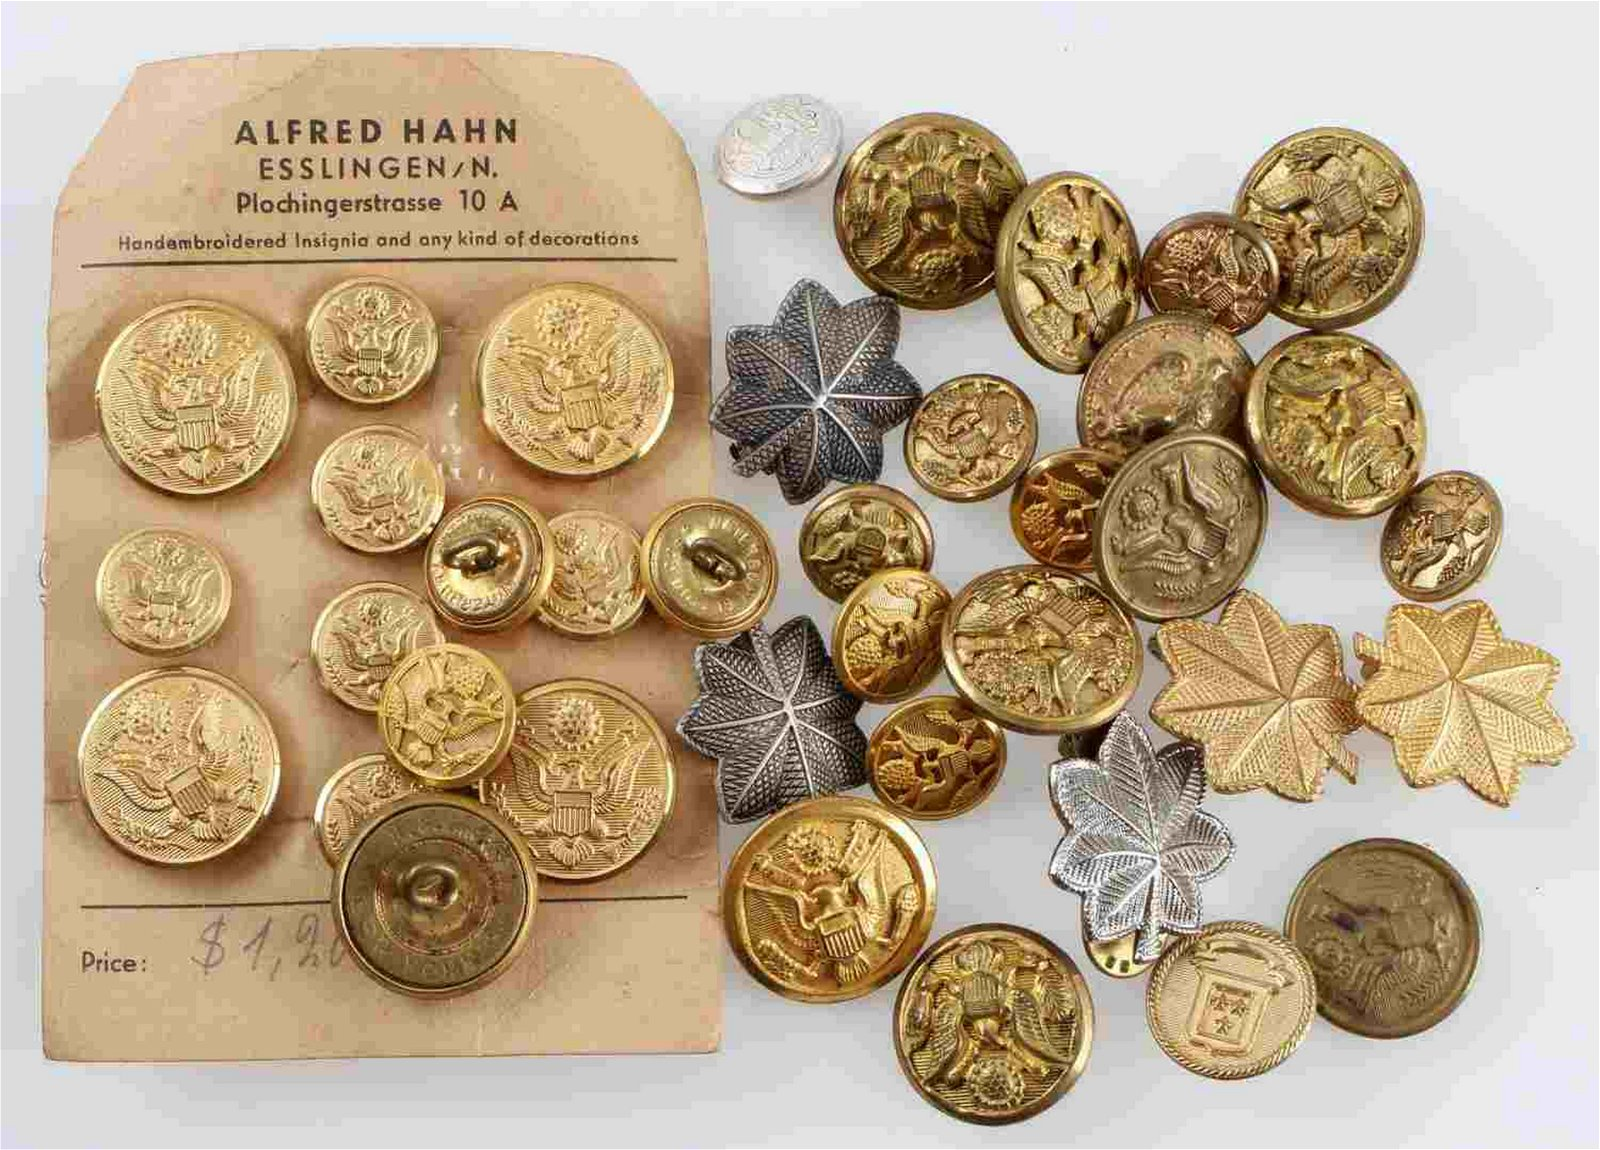 WWII US ARMY BUTTON & INSIGNIA BADGE LOT OF 35